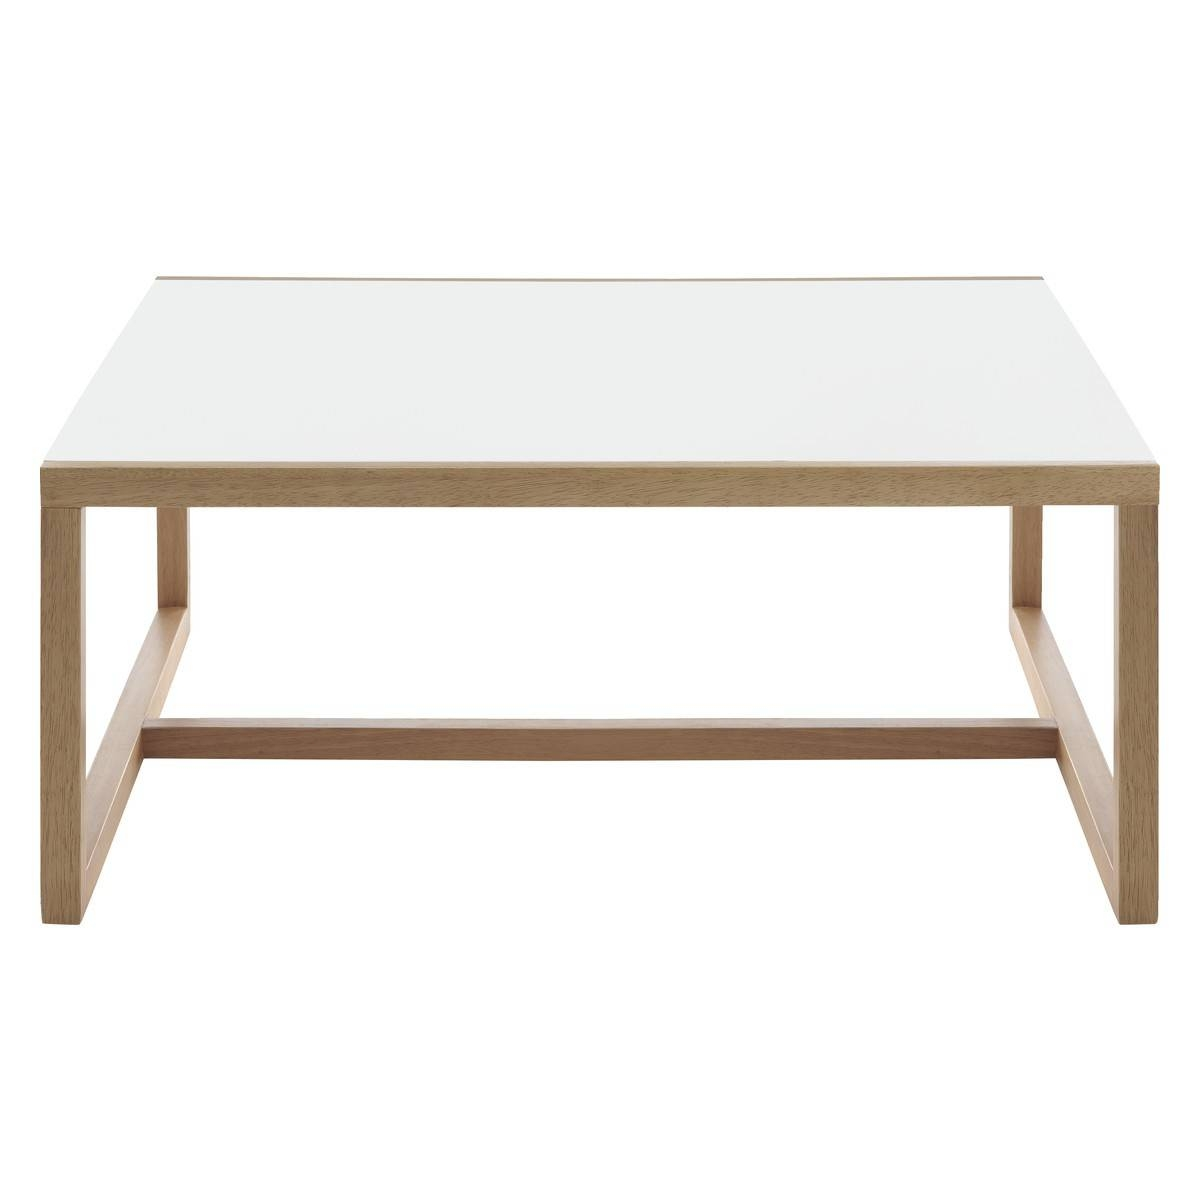 Small Square Coffee Table With Storage 30 Collection Of White Coffee Tables With Storage